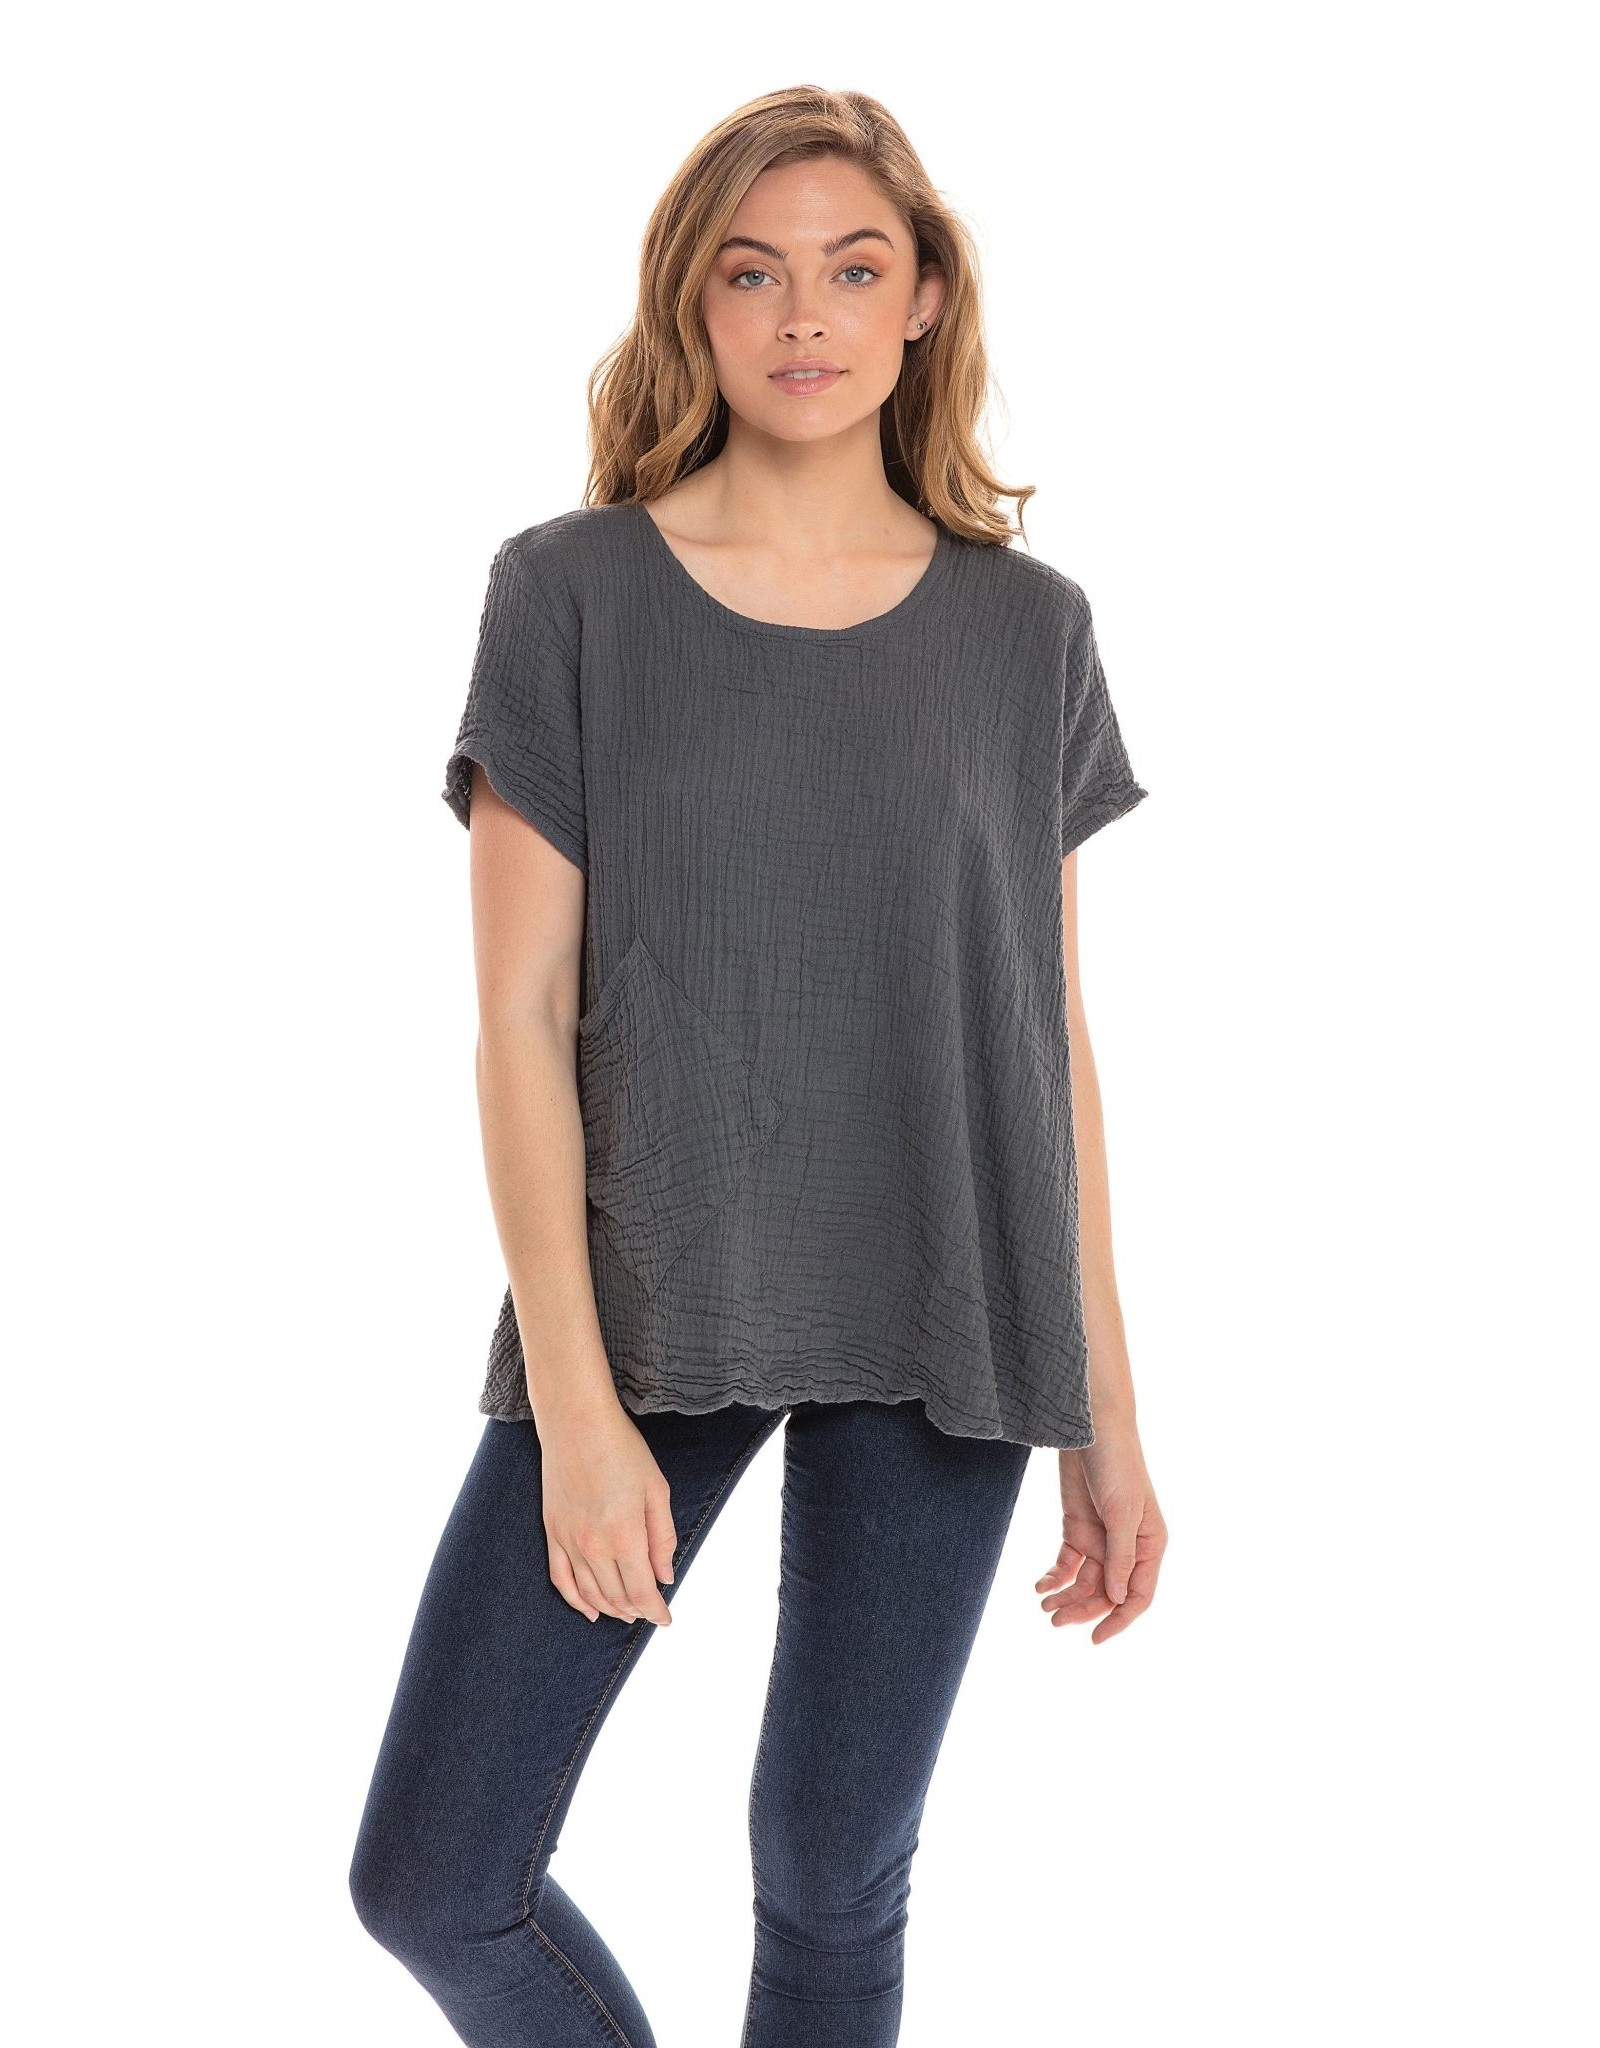 Cotton Boxy Top, Short Sleeved Pearl, Thailand